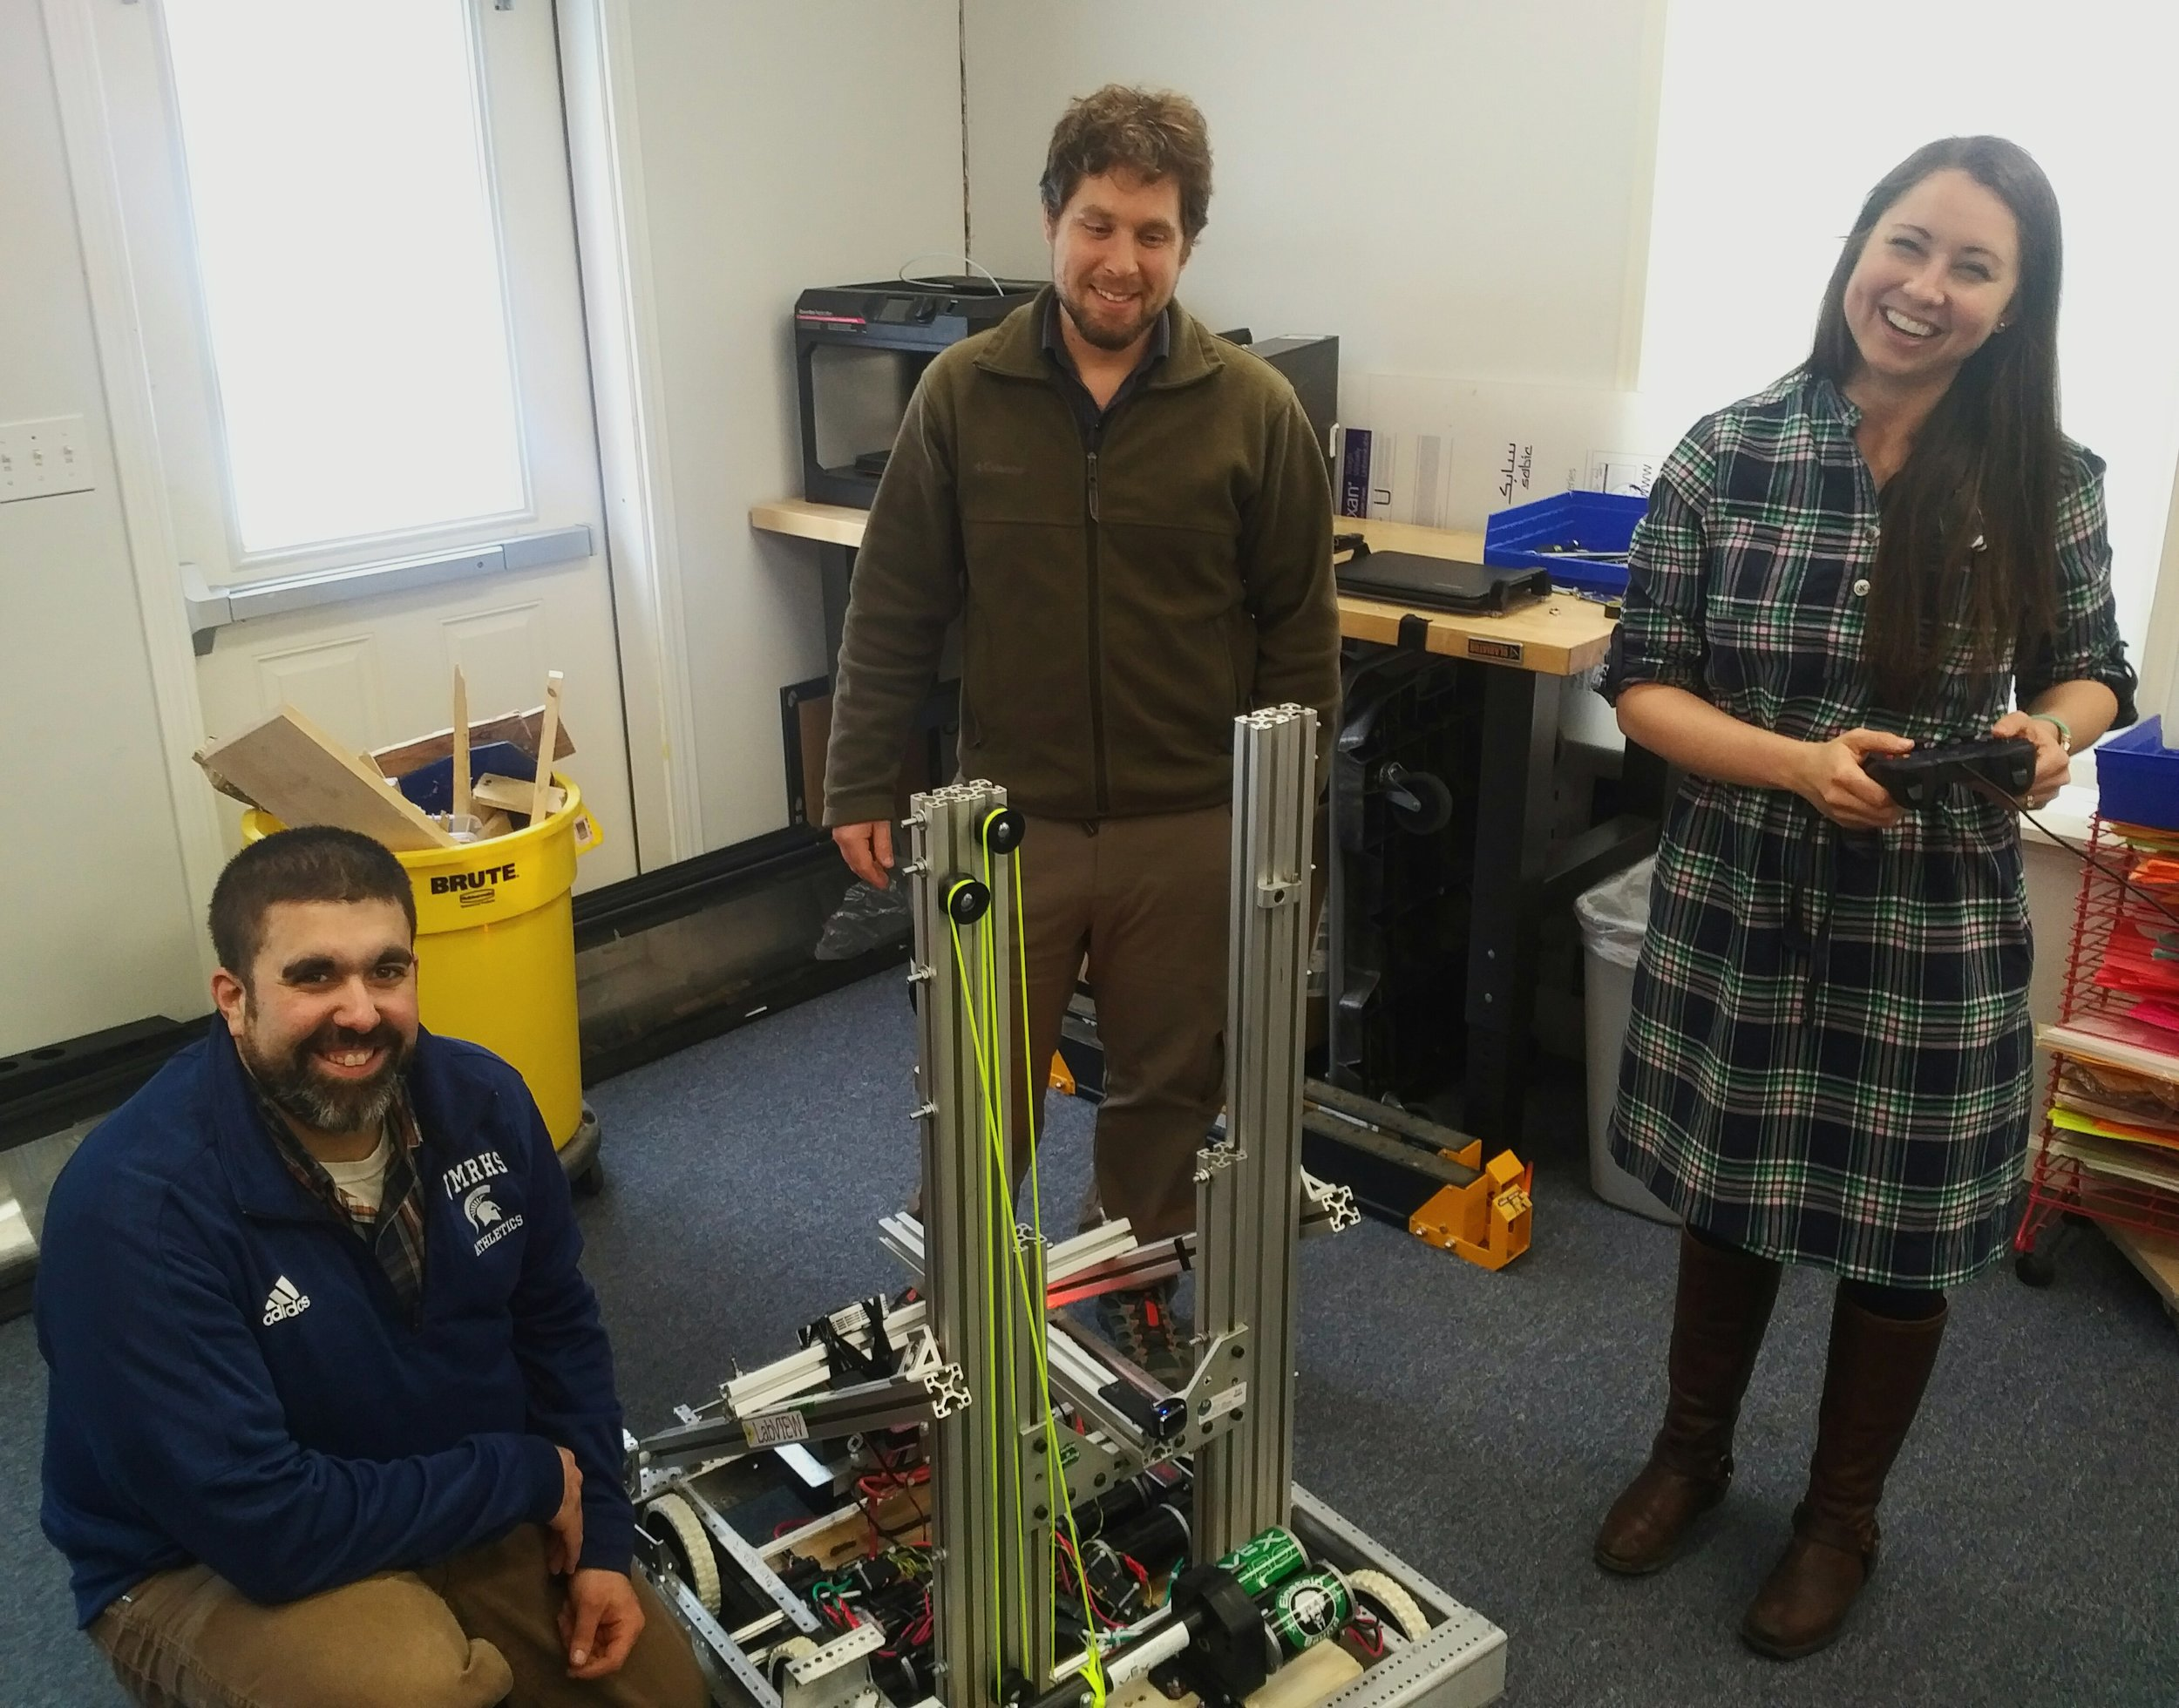 STEAM faculty Rick Grima and Dan Hubacz, who mentor the new Robotics team, joined by ERC's Dr. Katrina Kennett